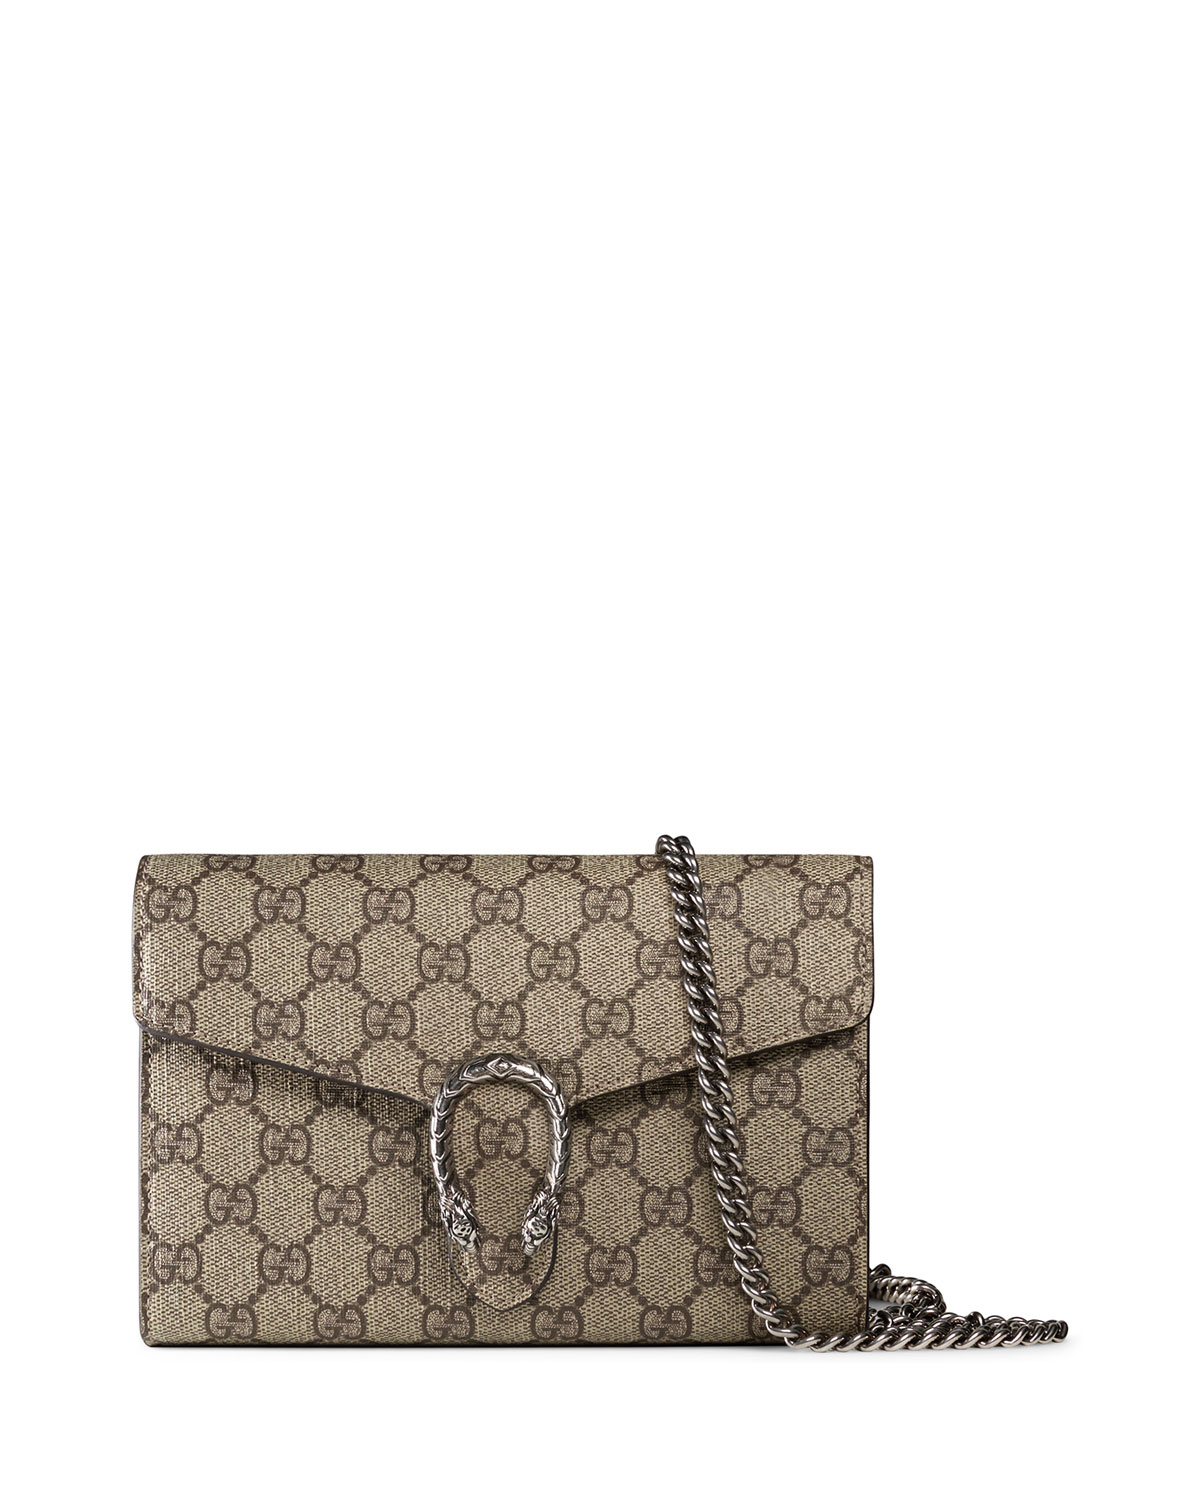 baeaa422581 Gucci Dionysus GG Supreme Mini Chain Bag